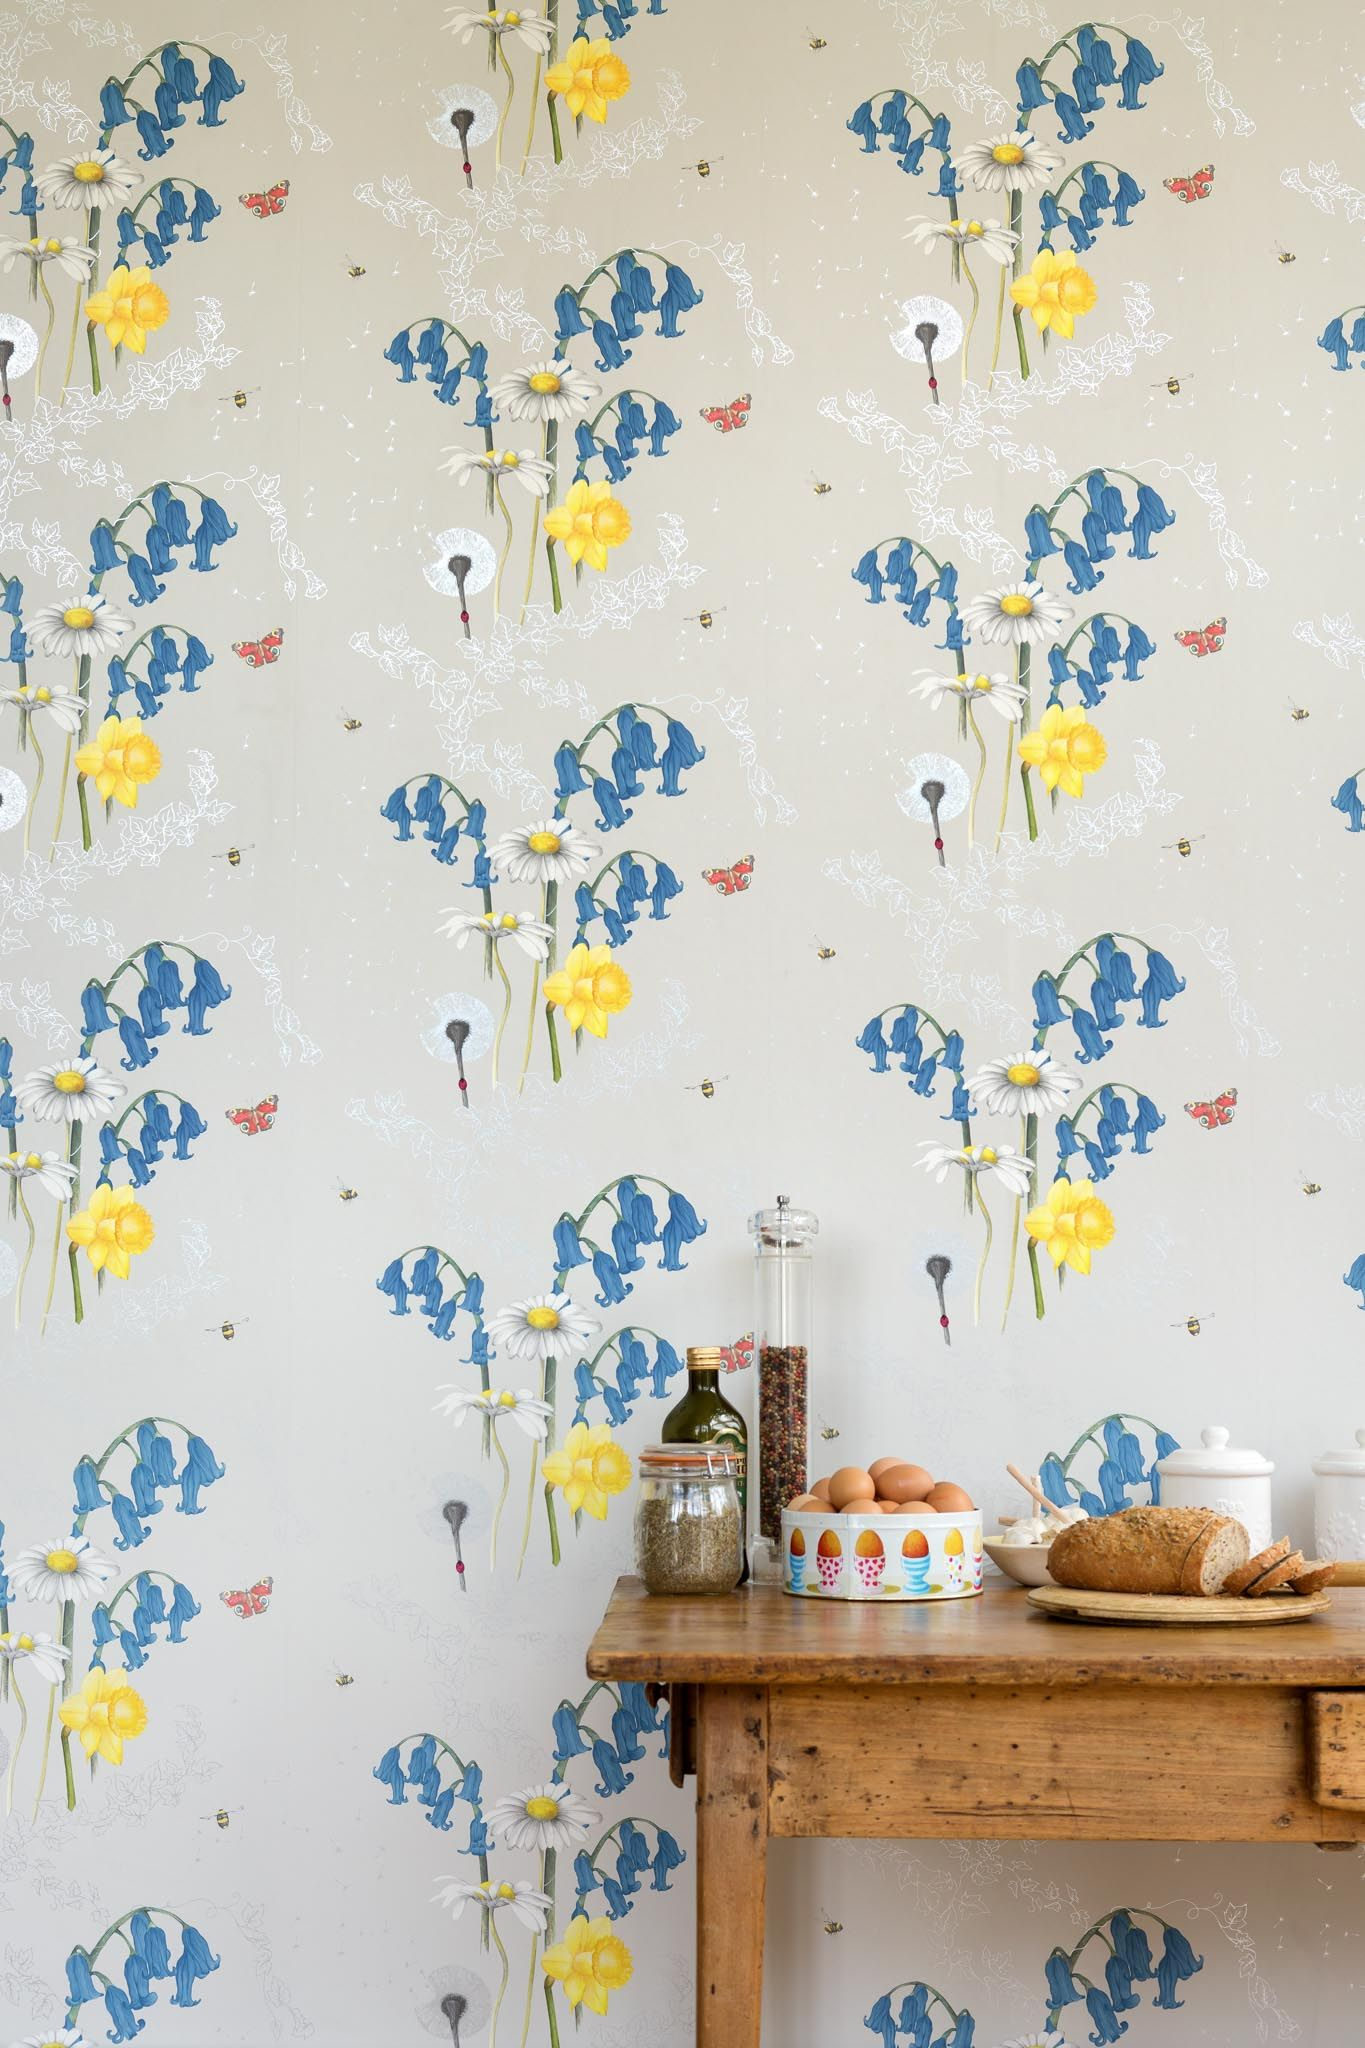 Juliet Travers Ltd - The Albion wallpaper collection will be launching at Decorex '15. The collection has been inspired by animals and nature from around the British Isles [Secret Garden 01]  http://www.juliettravers.com/